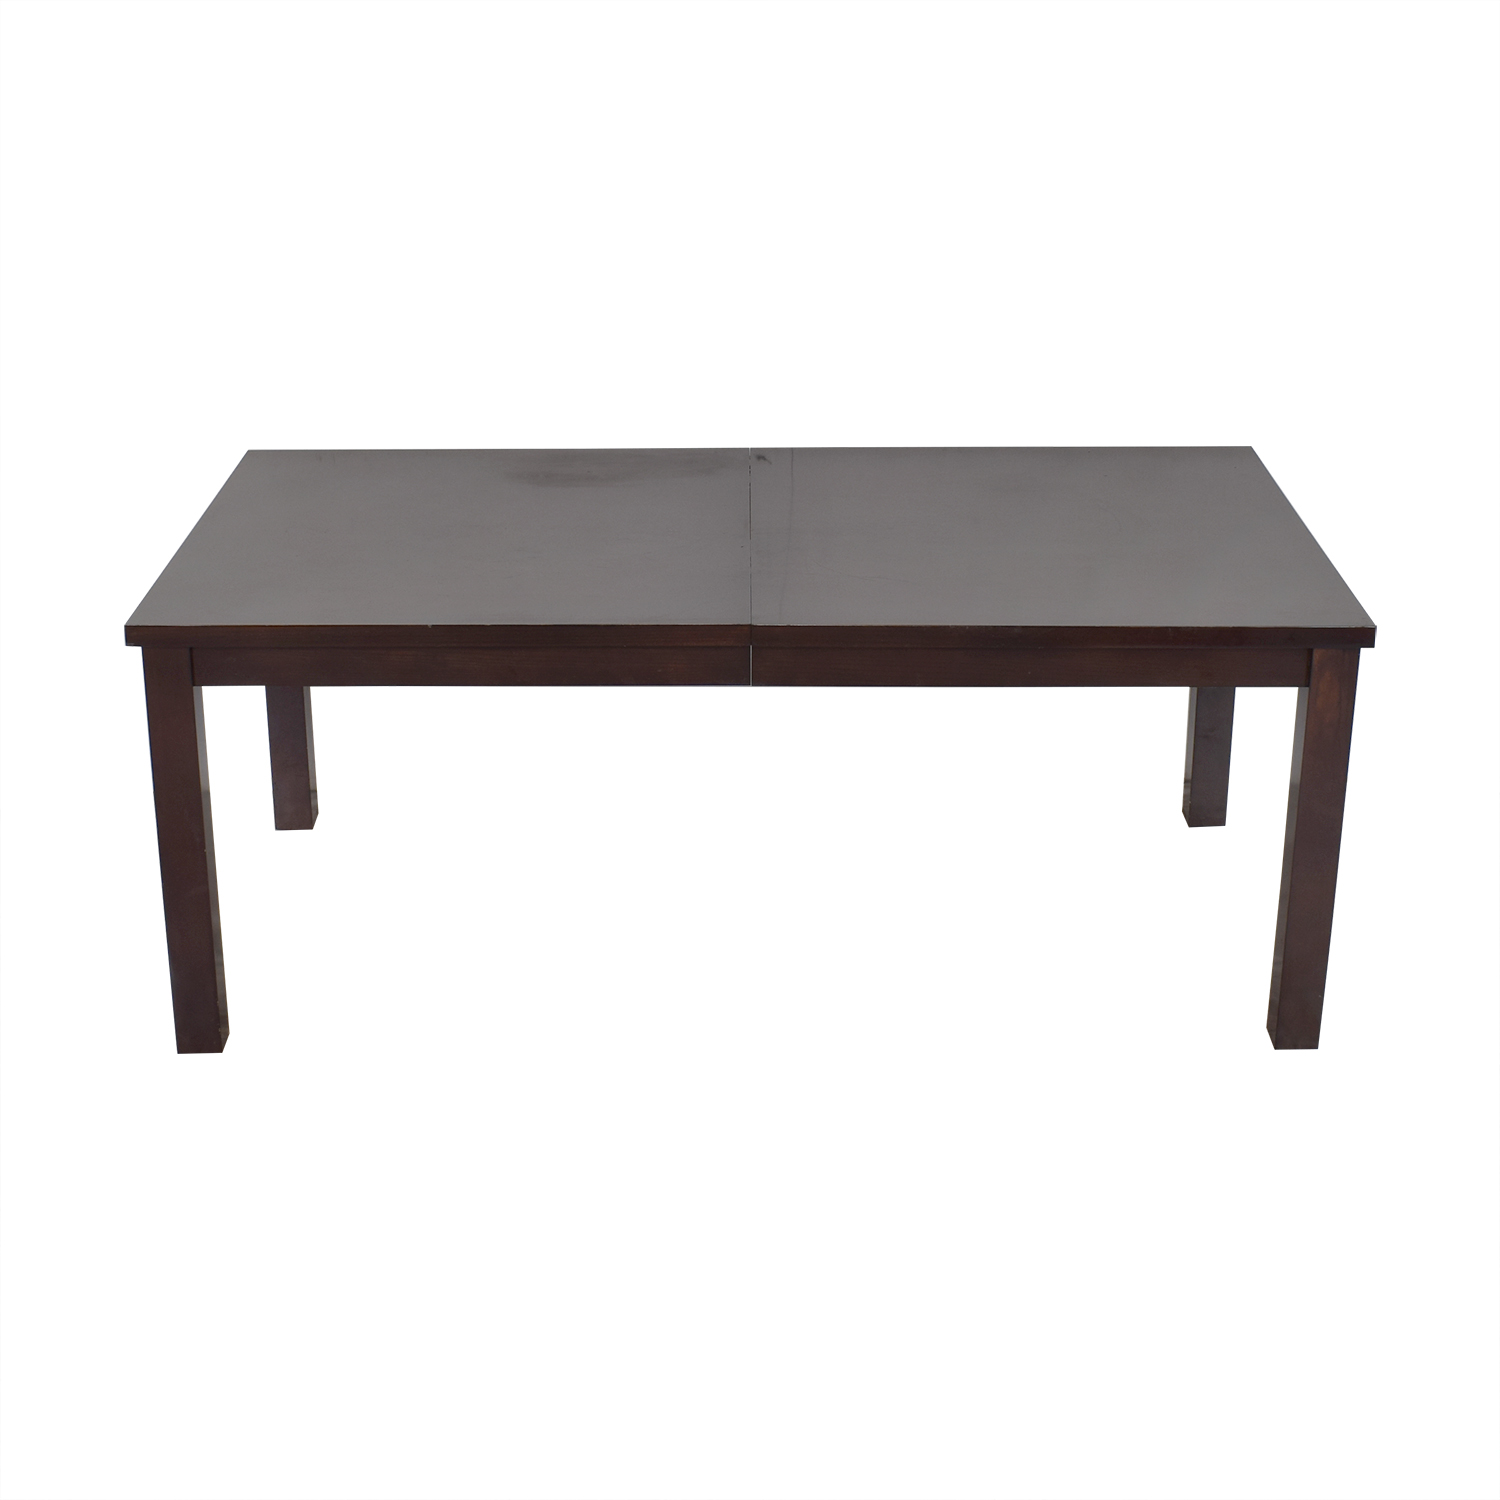 Mitchell Gold + Bob Williams Dining Table Mitchell Gold + Bob Williams